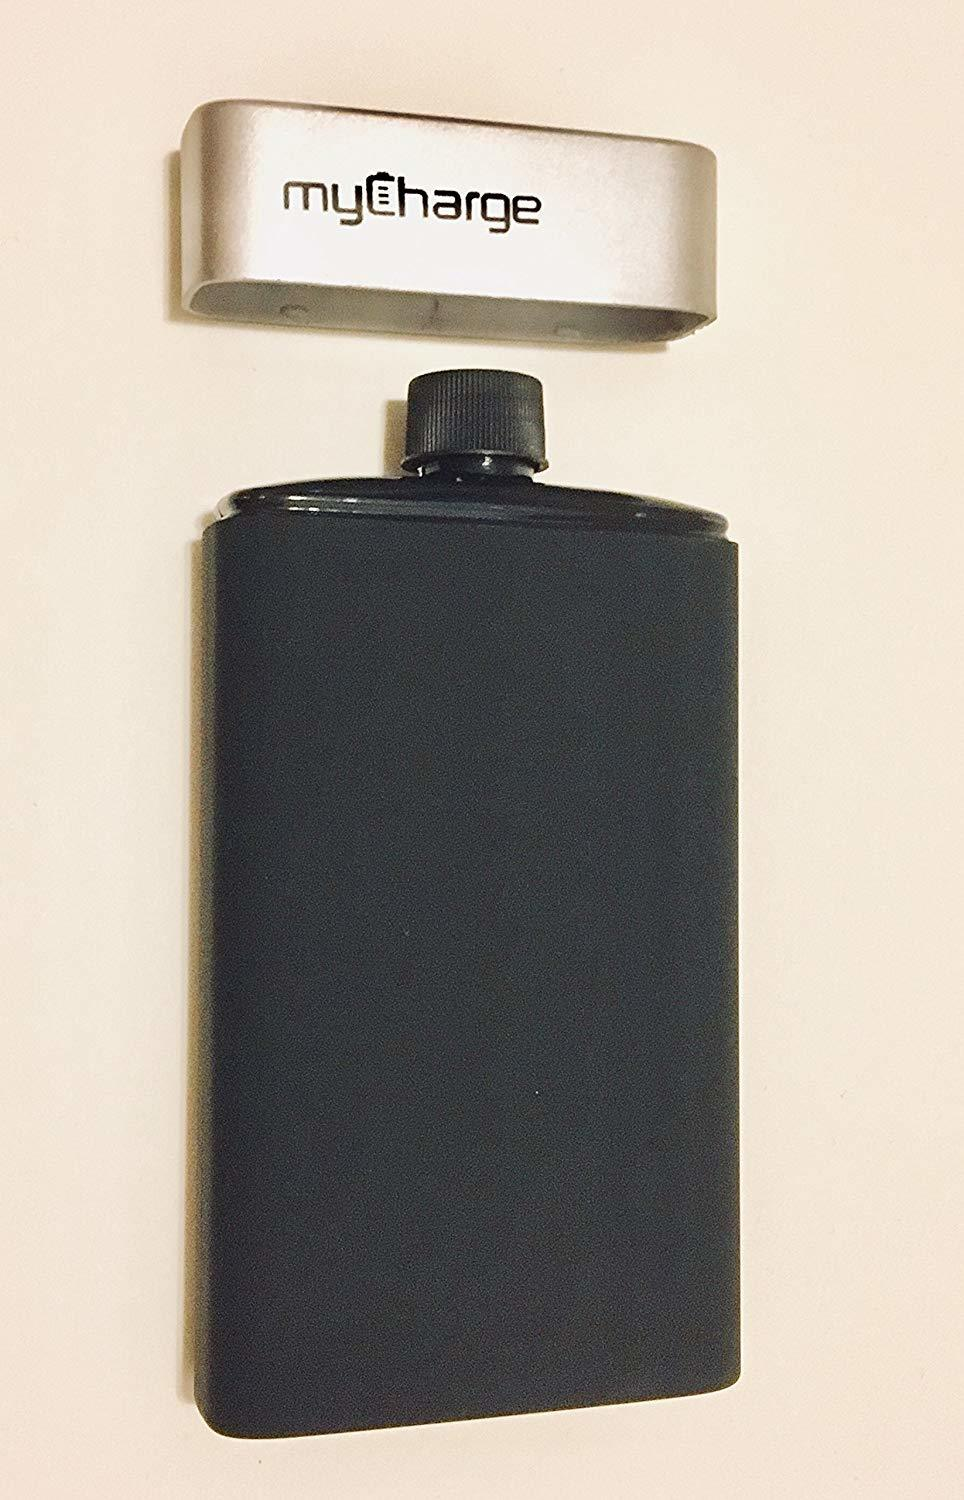 Portable Charger Flask - Ways to Sneak Alcohol